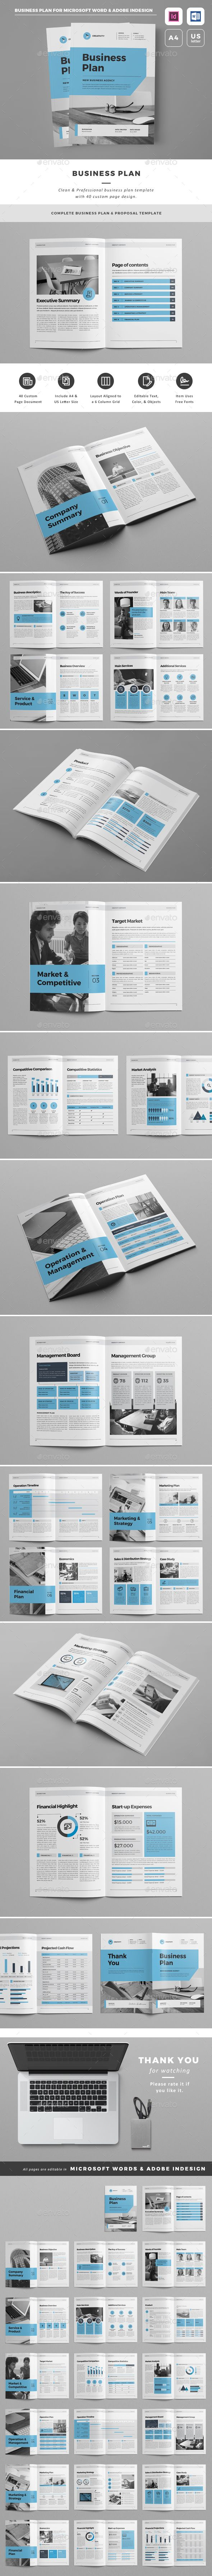 #Business Plan - #Proposals & #Invoices Stationery Download here: https://graphicriver.net/item/business-plan/19164135?ref=alena994